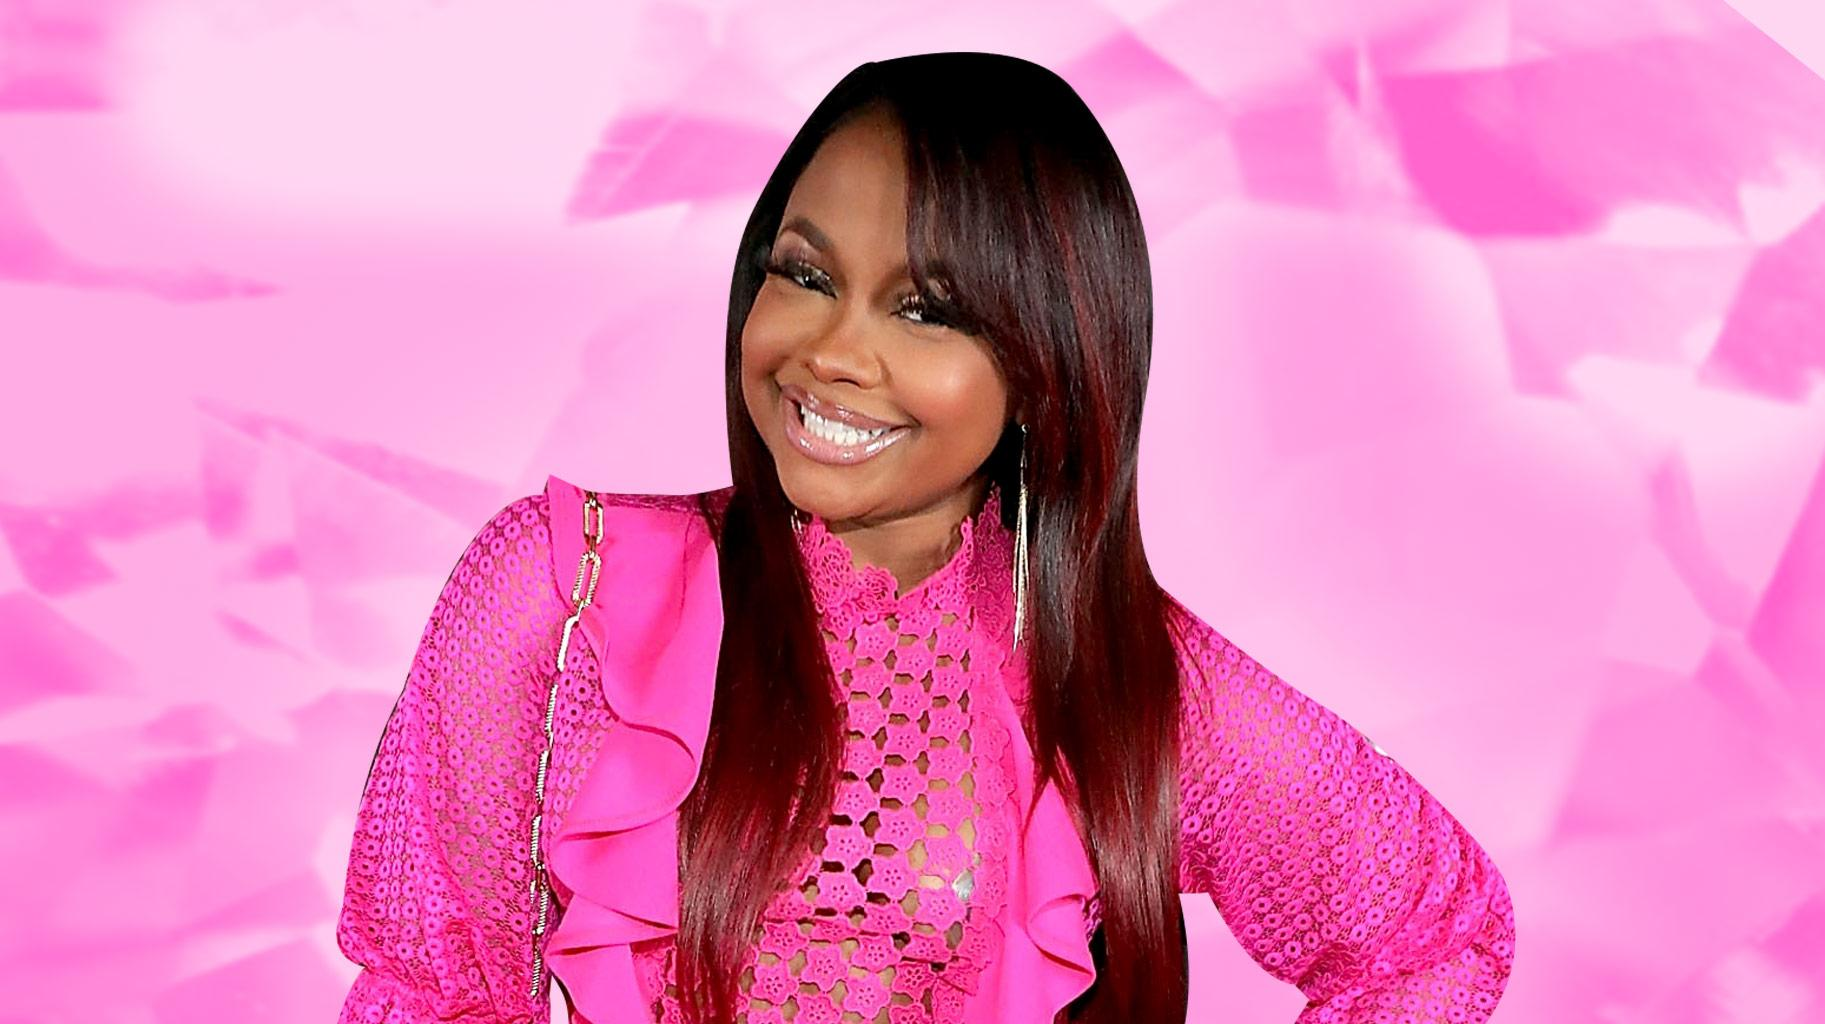 Phaedra Parks Addresses The Homeschooling Subject Amidst Social Distancing